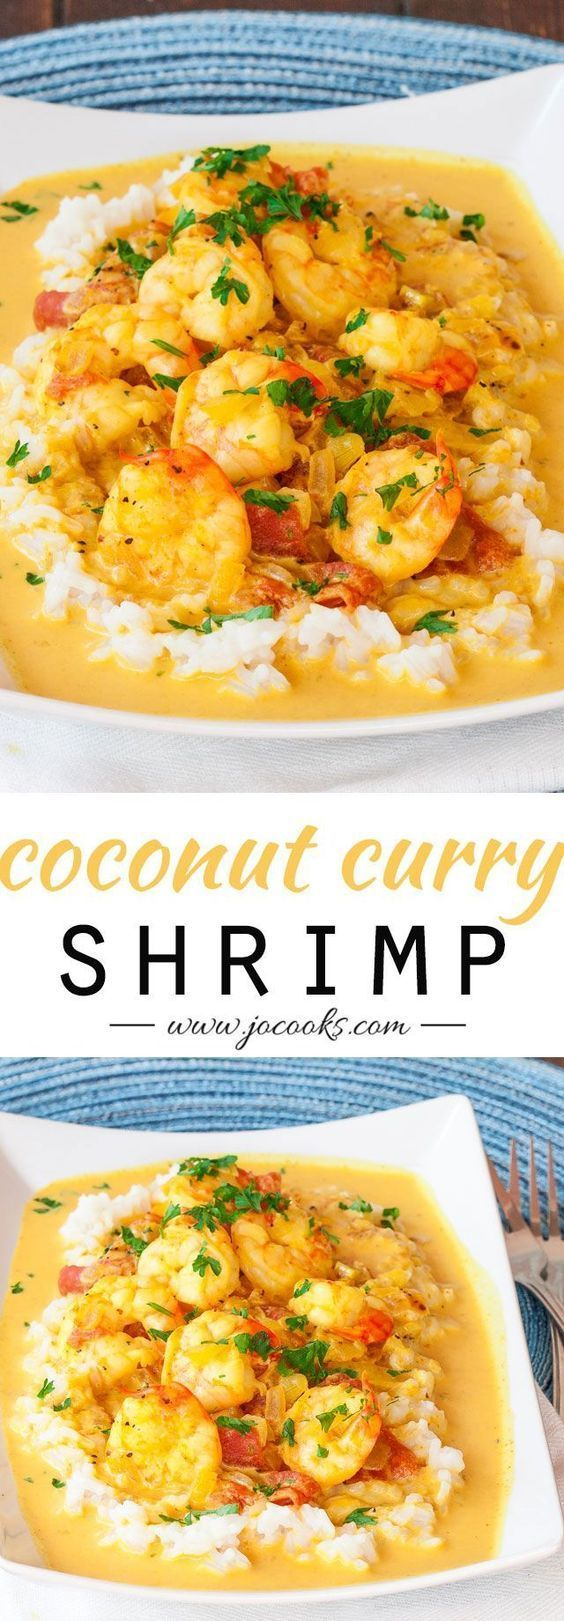 "Coconut Shrimp Curry - Serve with Cauliflower ""Rice"" and coconut oil to make Paleo! #paleo #grainfree #glutenfree"